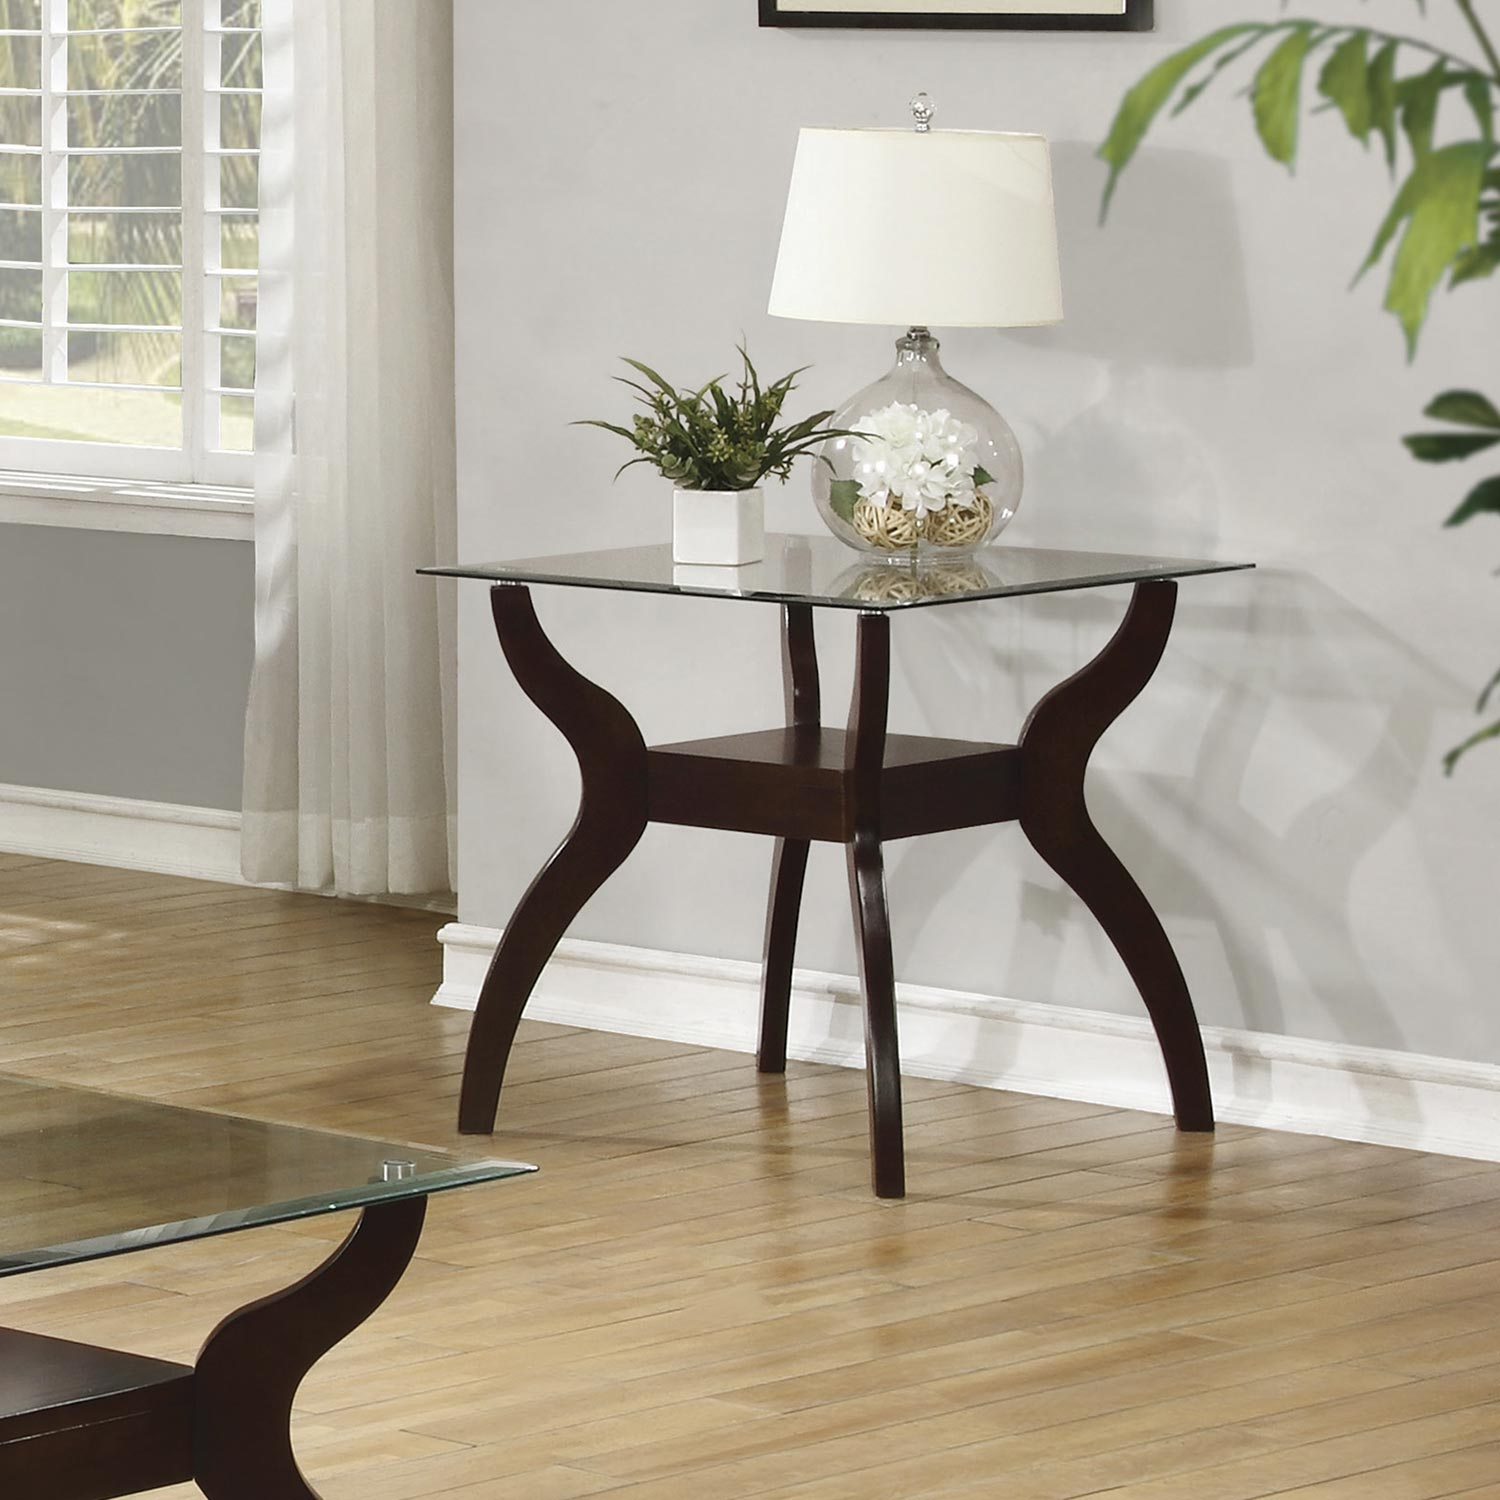 Coaster 704628 End Table - Cappuccino / Tempered Glass